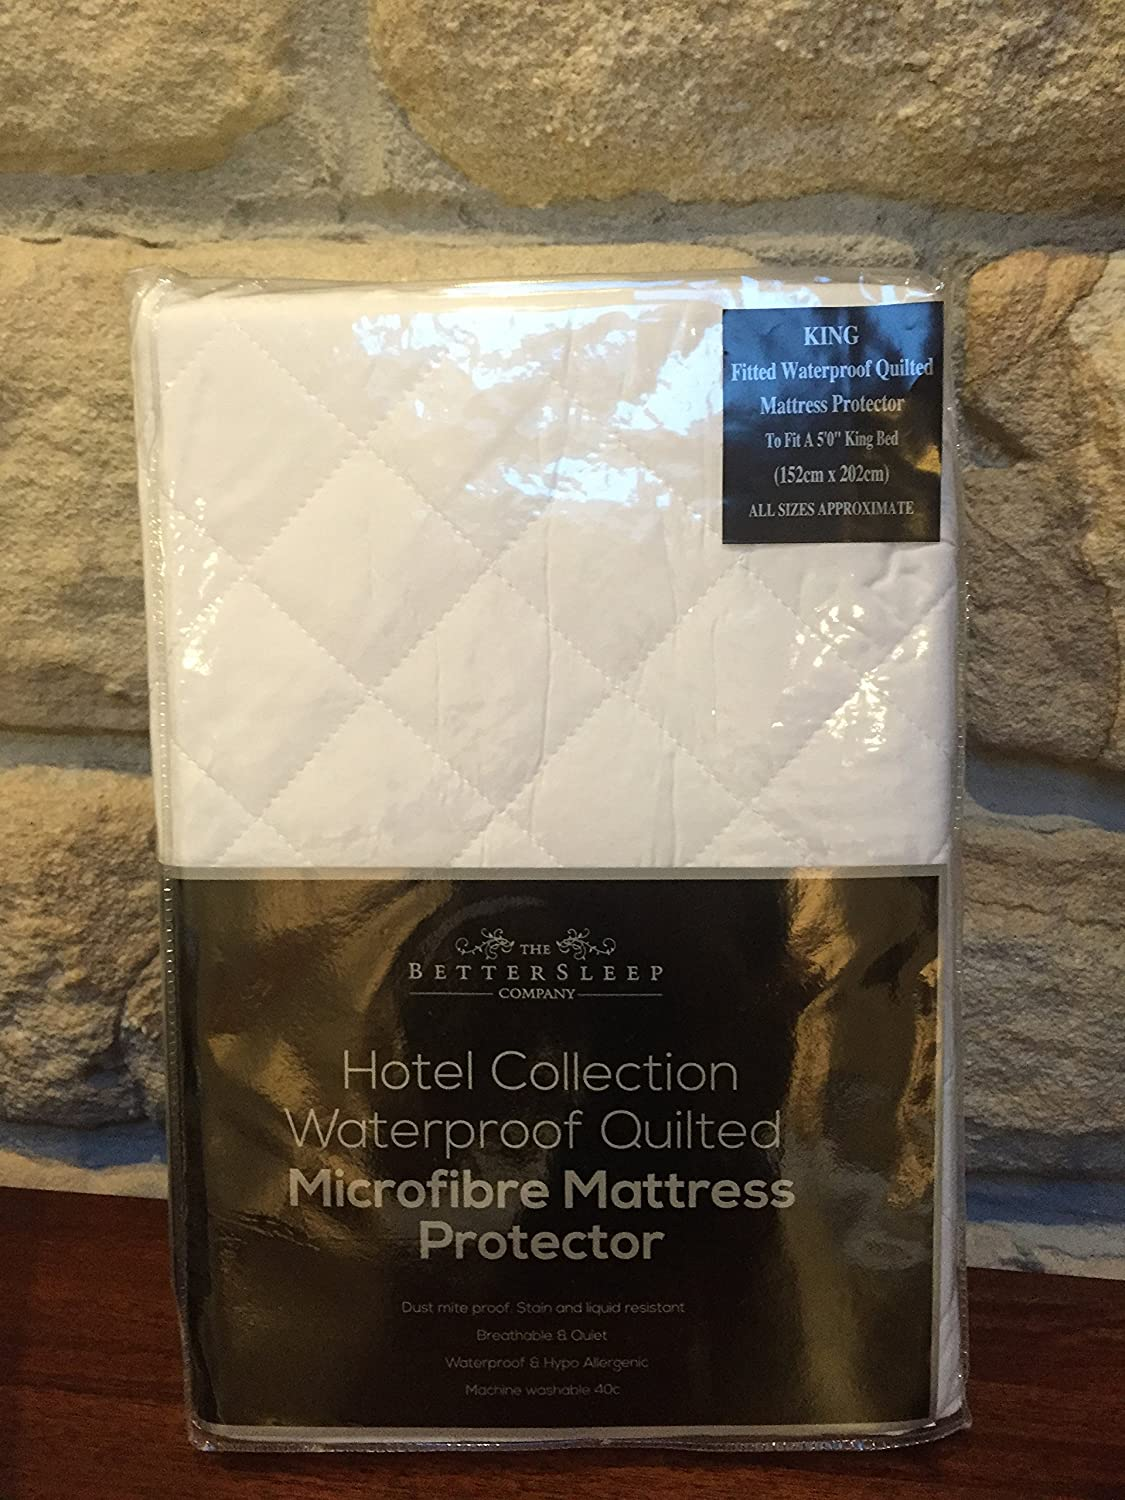 The Bettersleep Company Brand Waterproof Quilted Microfibre Mattress  Protectors King Size Bed- Hotel Quality Anti Dustmite, Waterproof,  Absorbent, ...